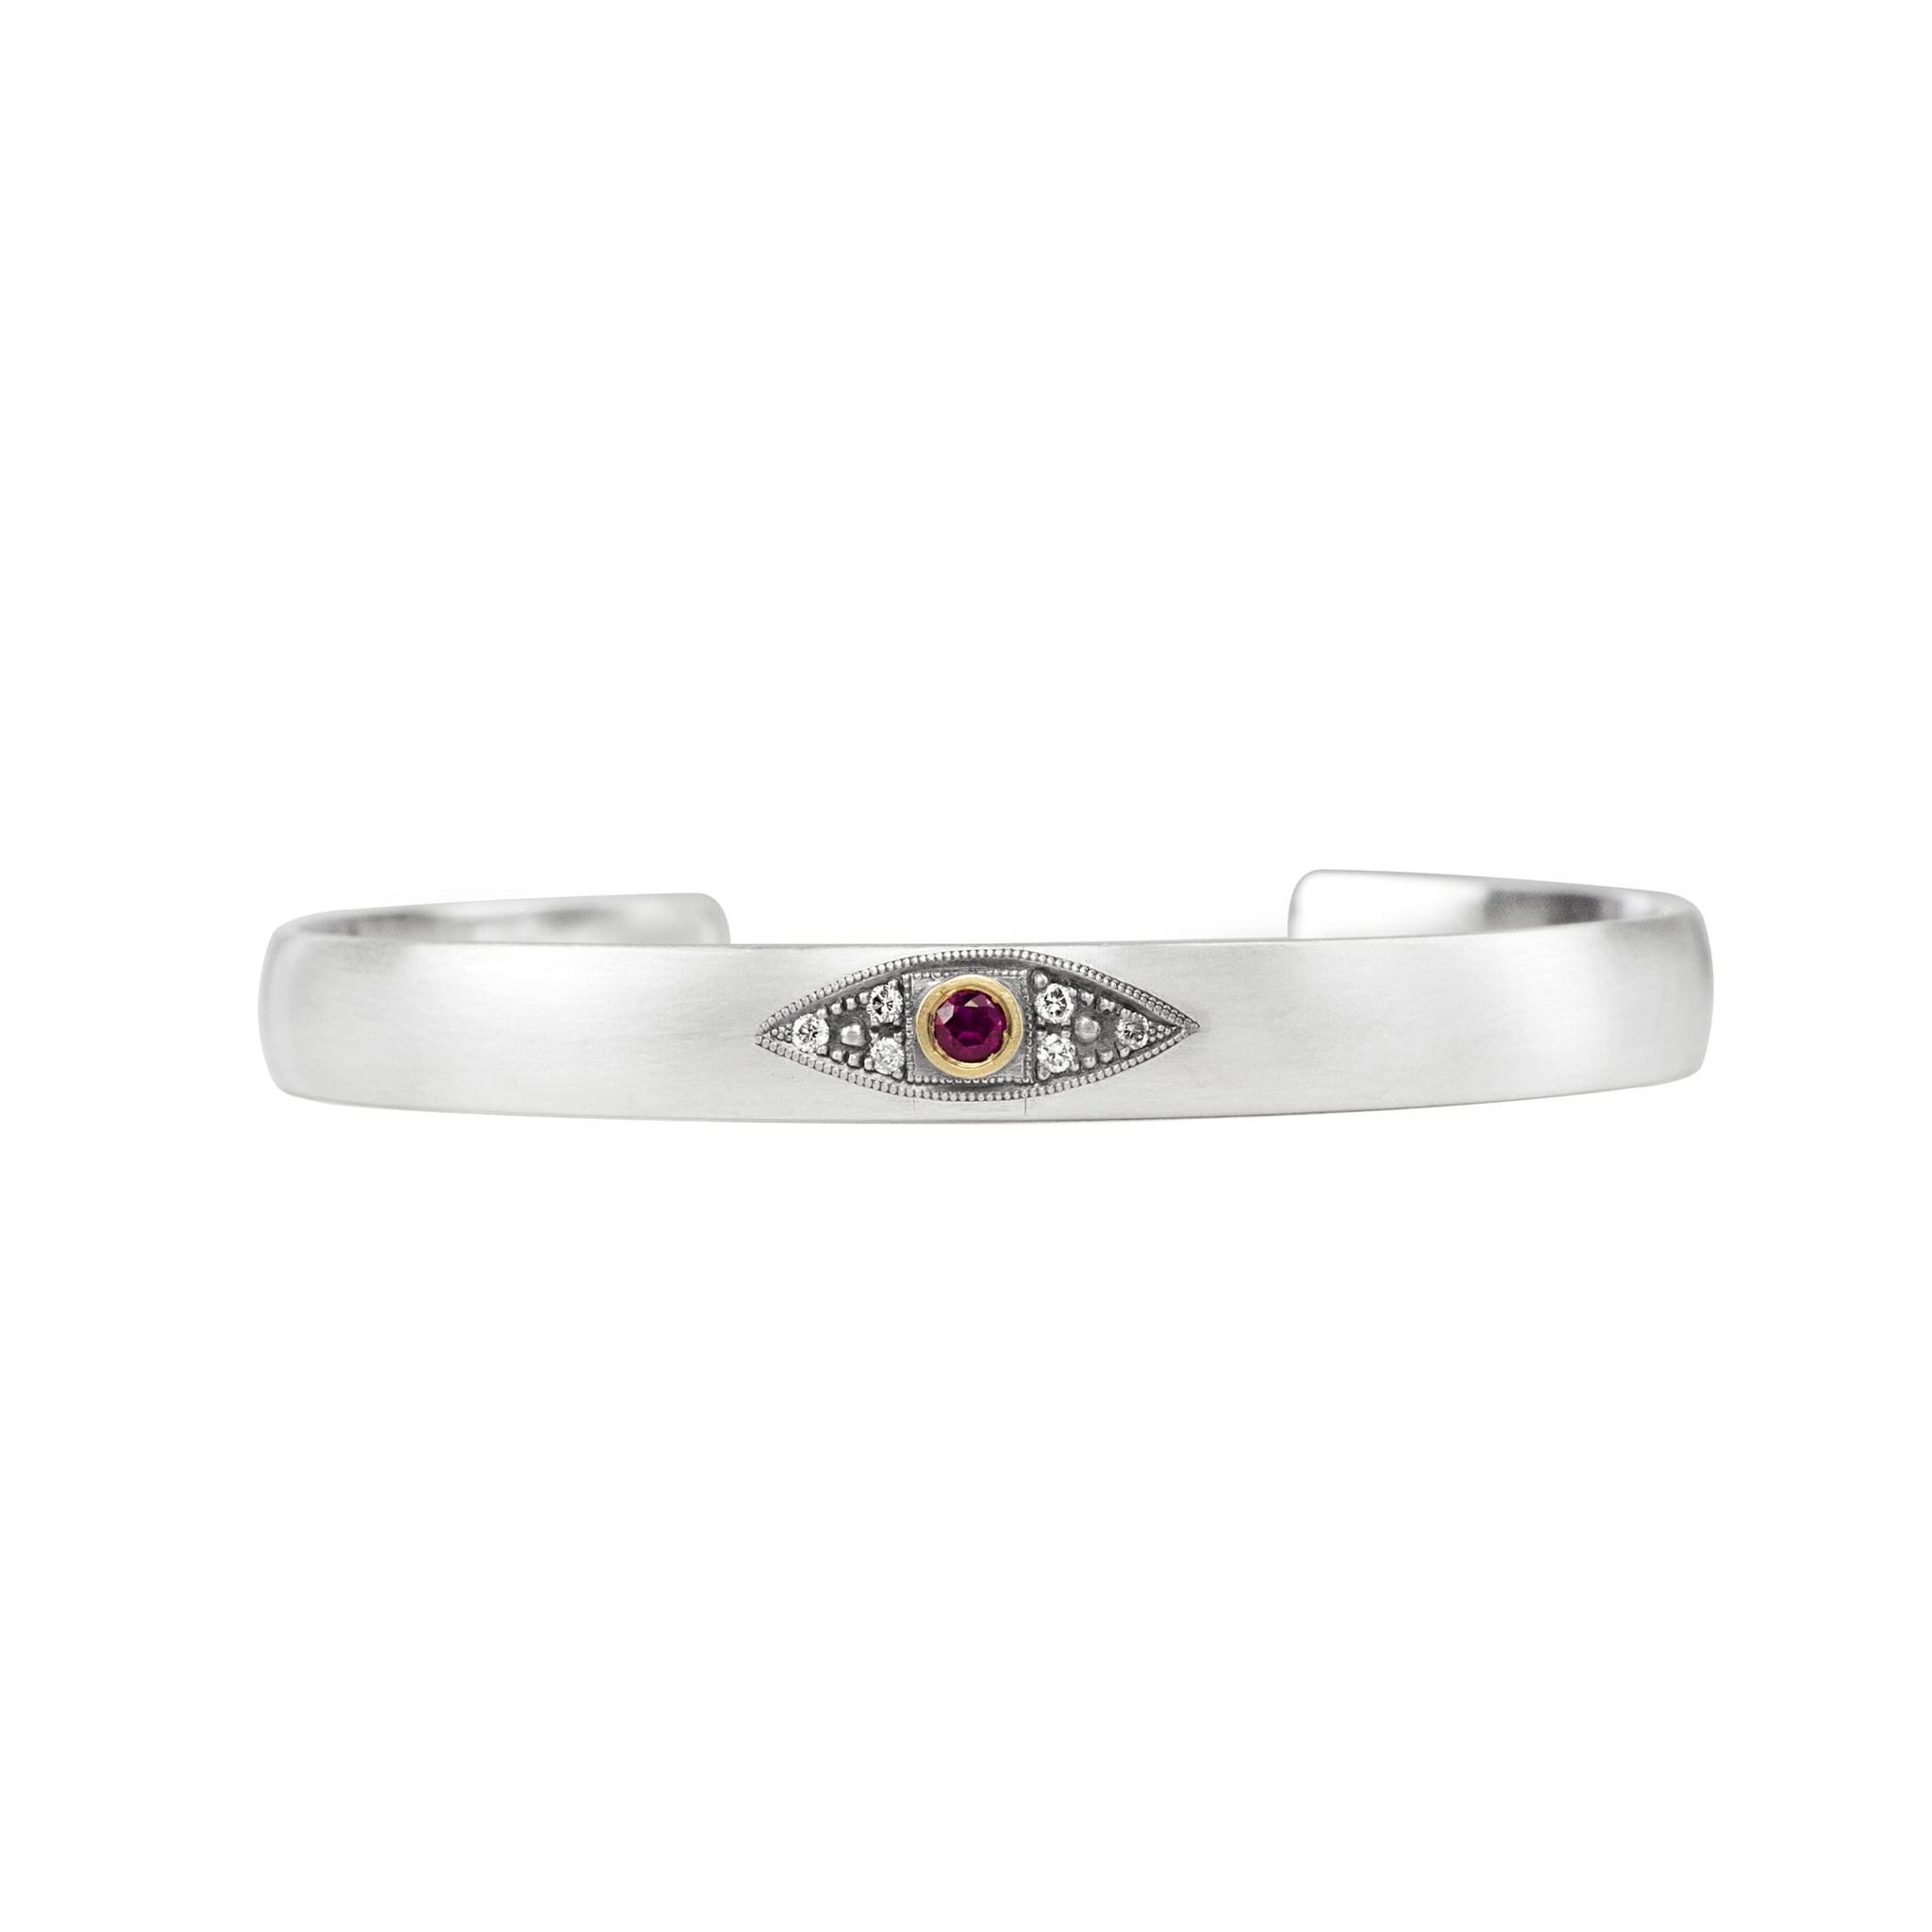 Sterling silver stacking cuff with ruby evil eye in 14k yellow gold bezel with champagne diamonds